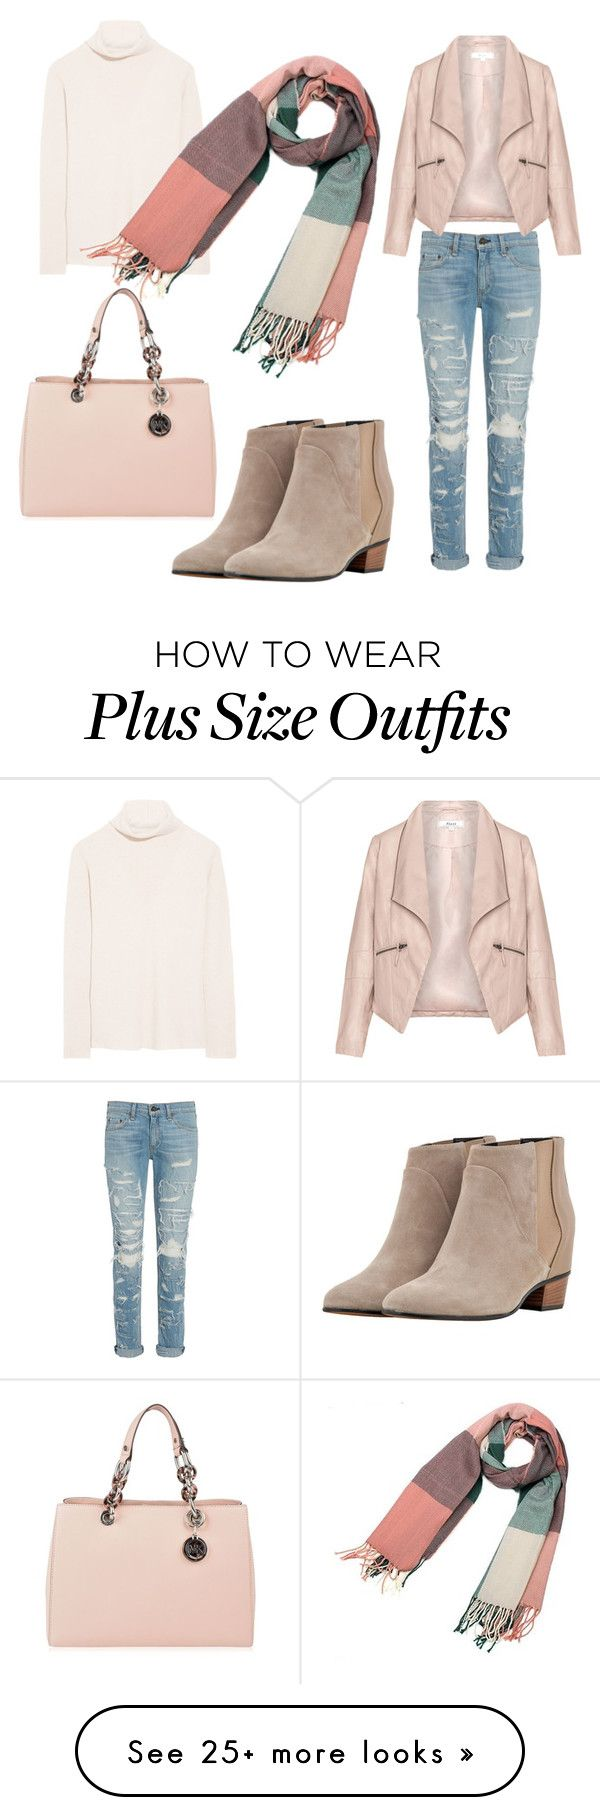 """Без названия #91"" by jujik85 on Polyvore featuring rag & bone, The Row, Zizzi, Golden Goose, MICHAEL Michael Kors, women's clothing, women, female, woman and misses"